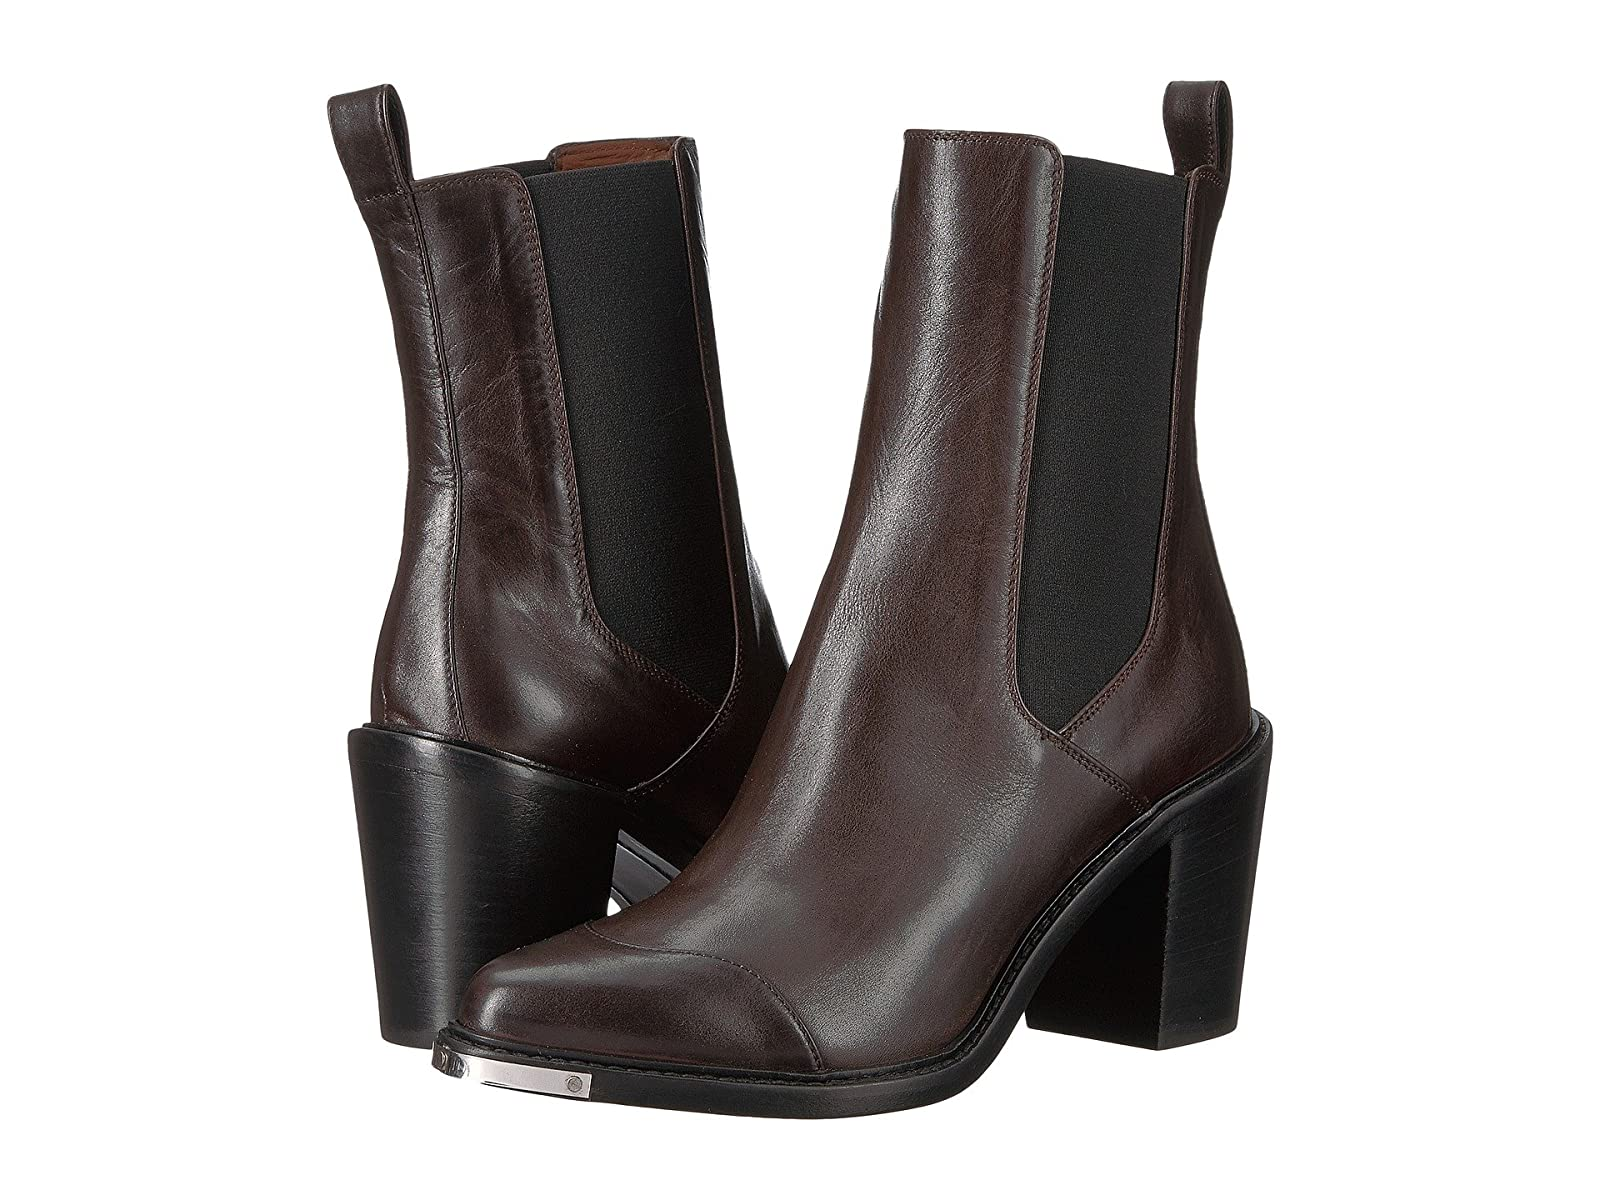 BELSTAFF Aviland Calf Leather Ankle BootsCheap and distinctive eye-catching shoes